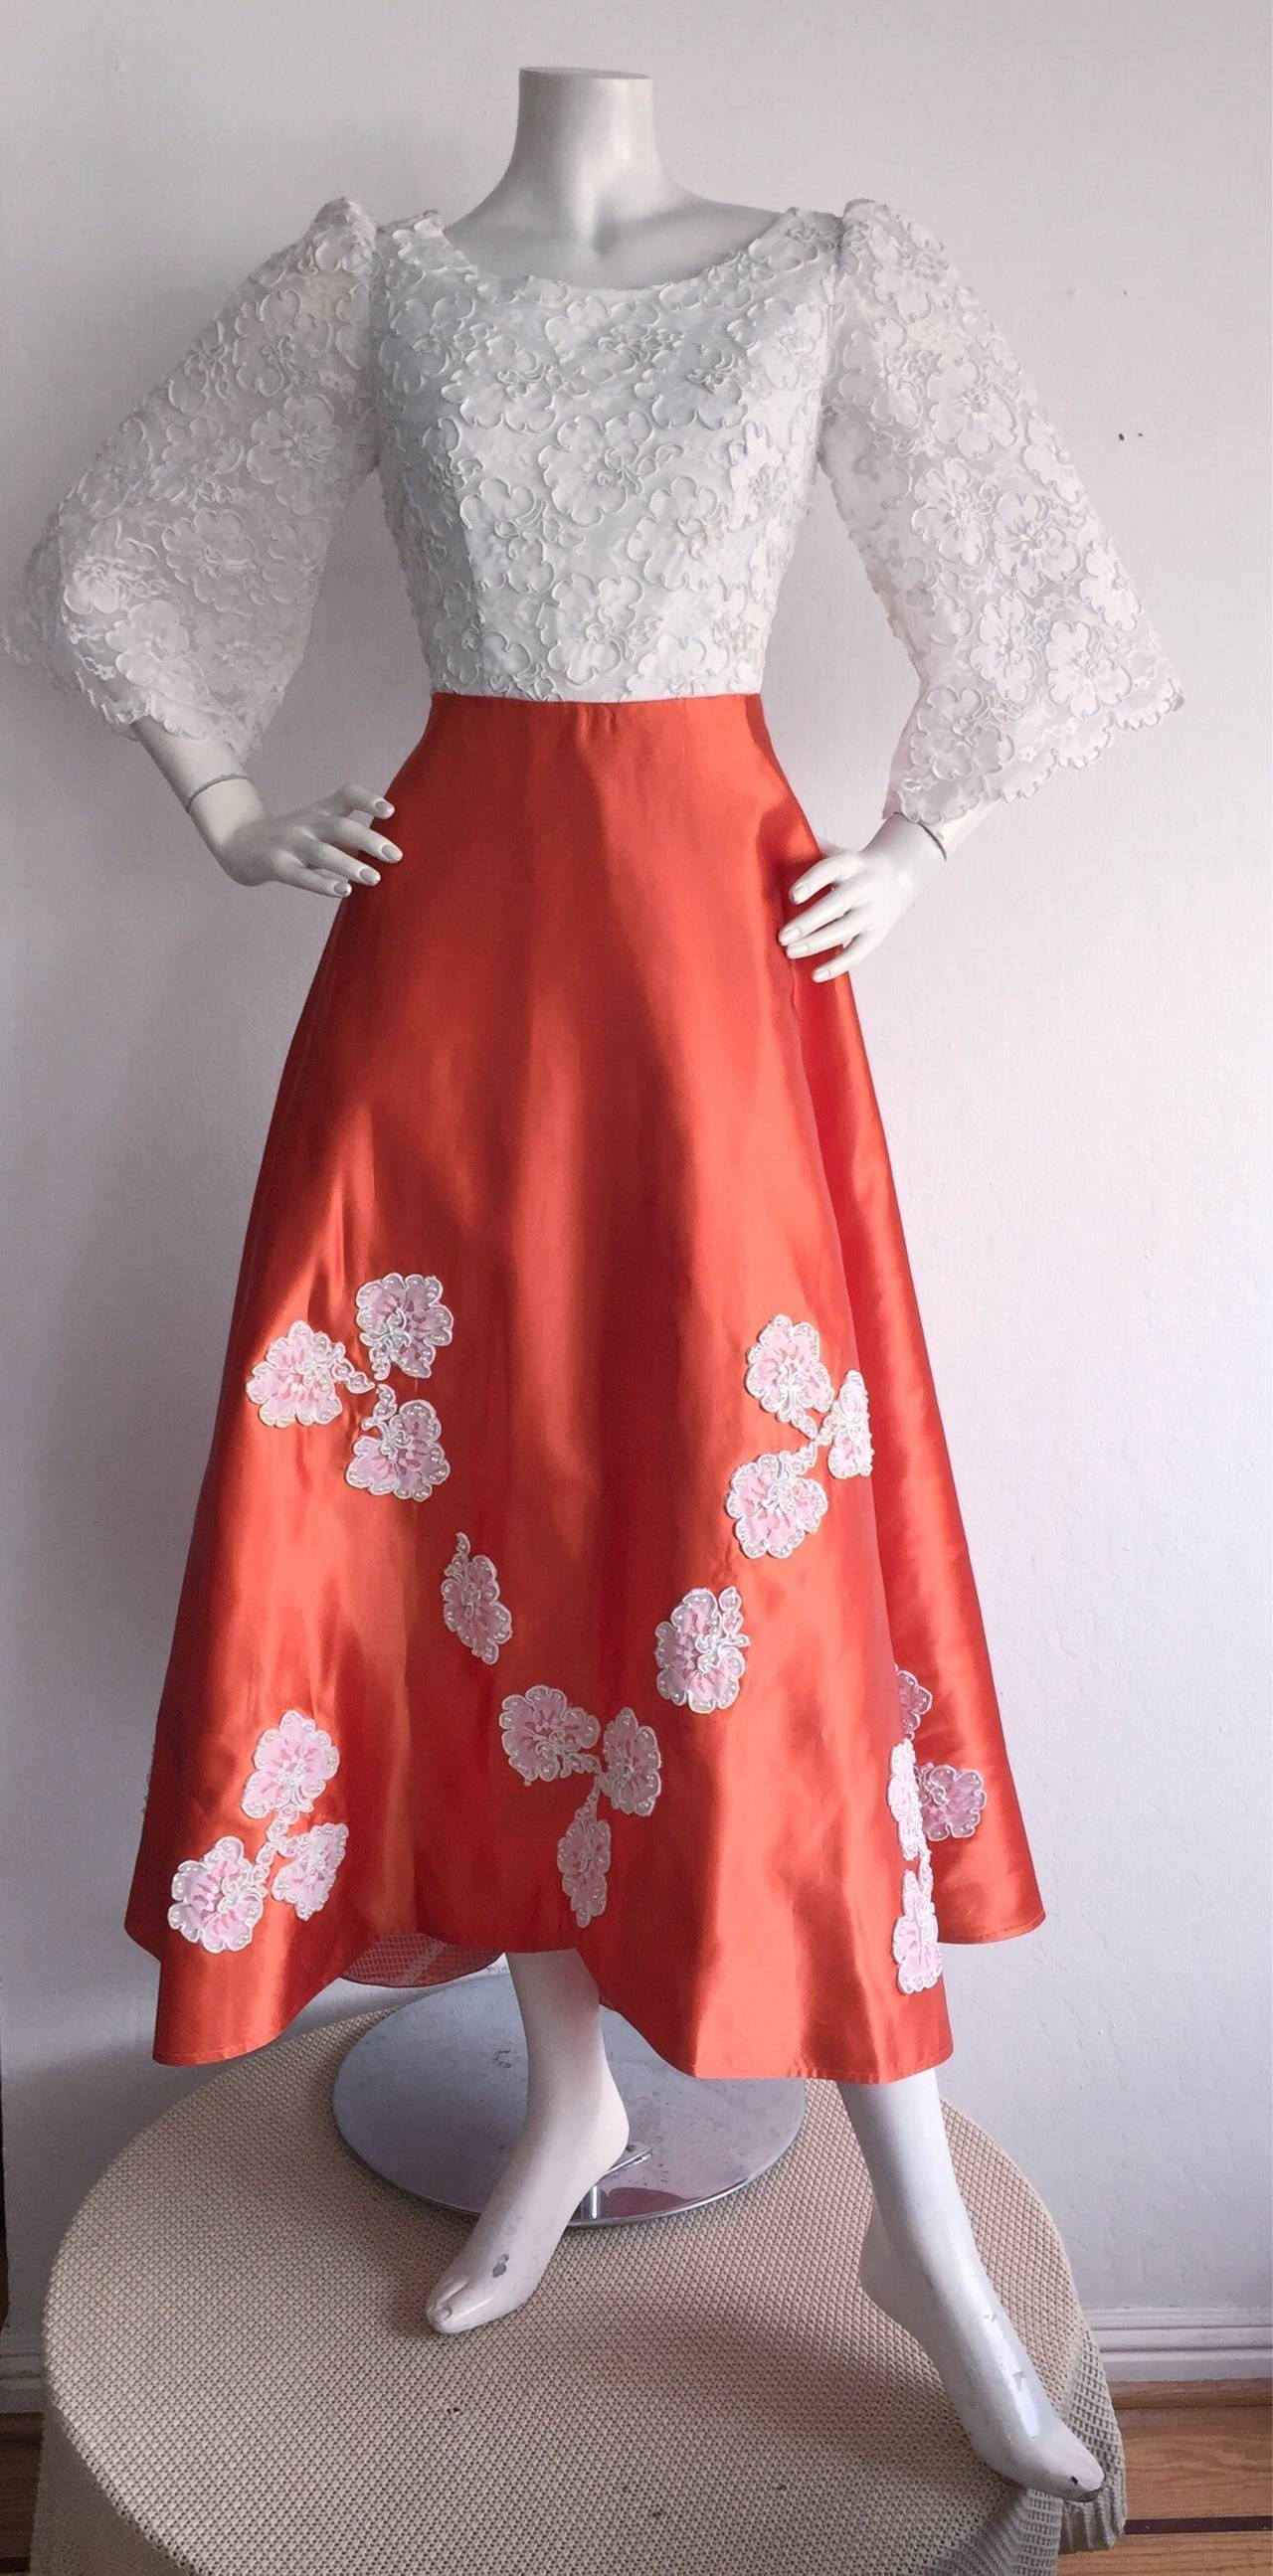 Couture quality! This 1960s beauty is absolutely irresistible, and the workmanship is impeccably done! Hand finished. Gorgeous white crochet/lace bodice, with full bell sleeves. Beautiful vivid orange full satin skirt, with a horsehair sewn attached